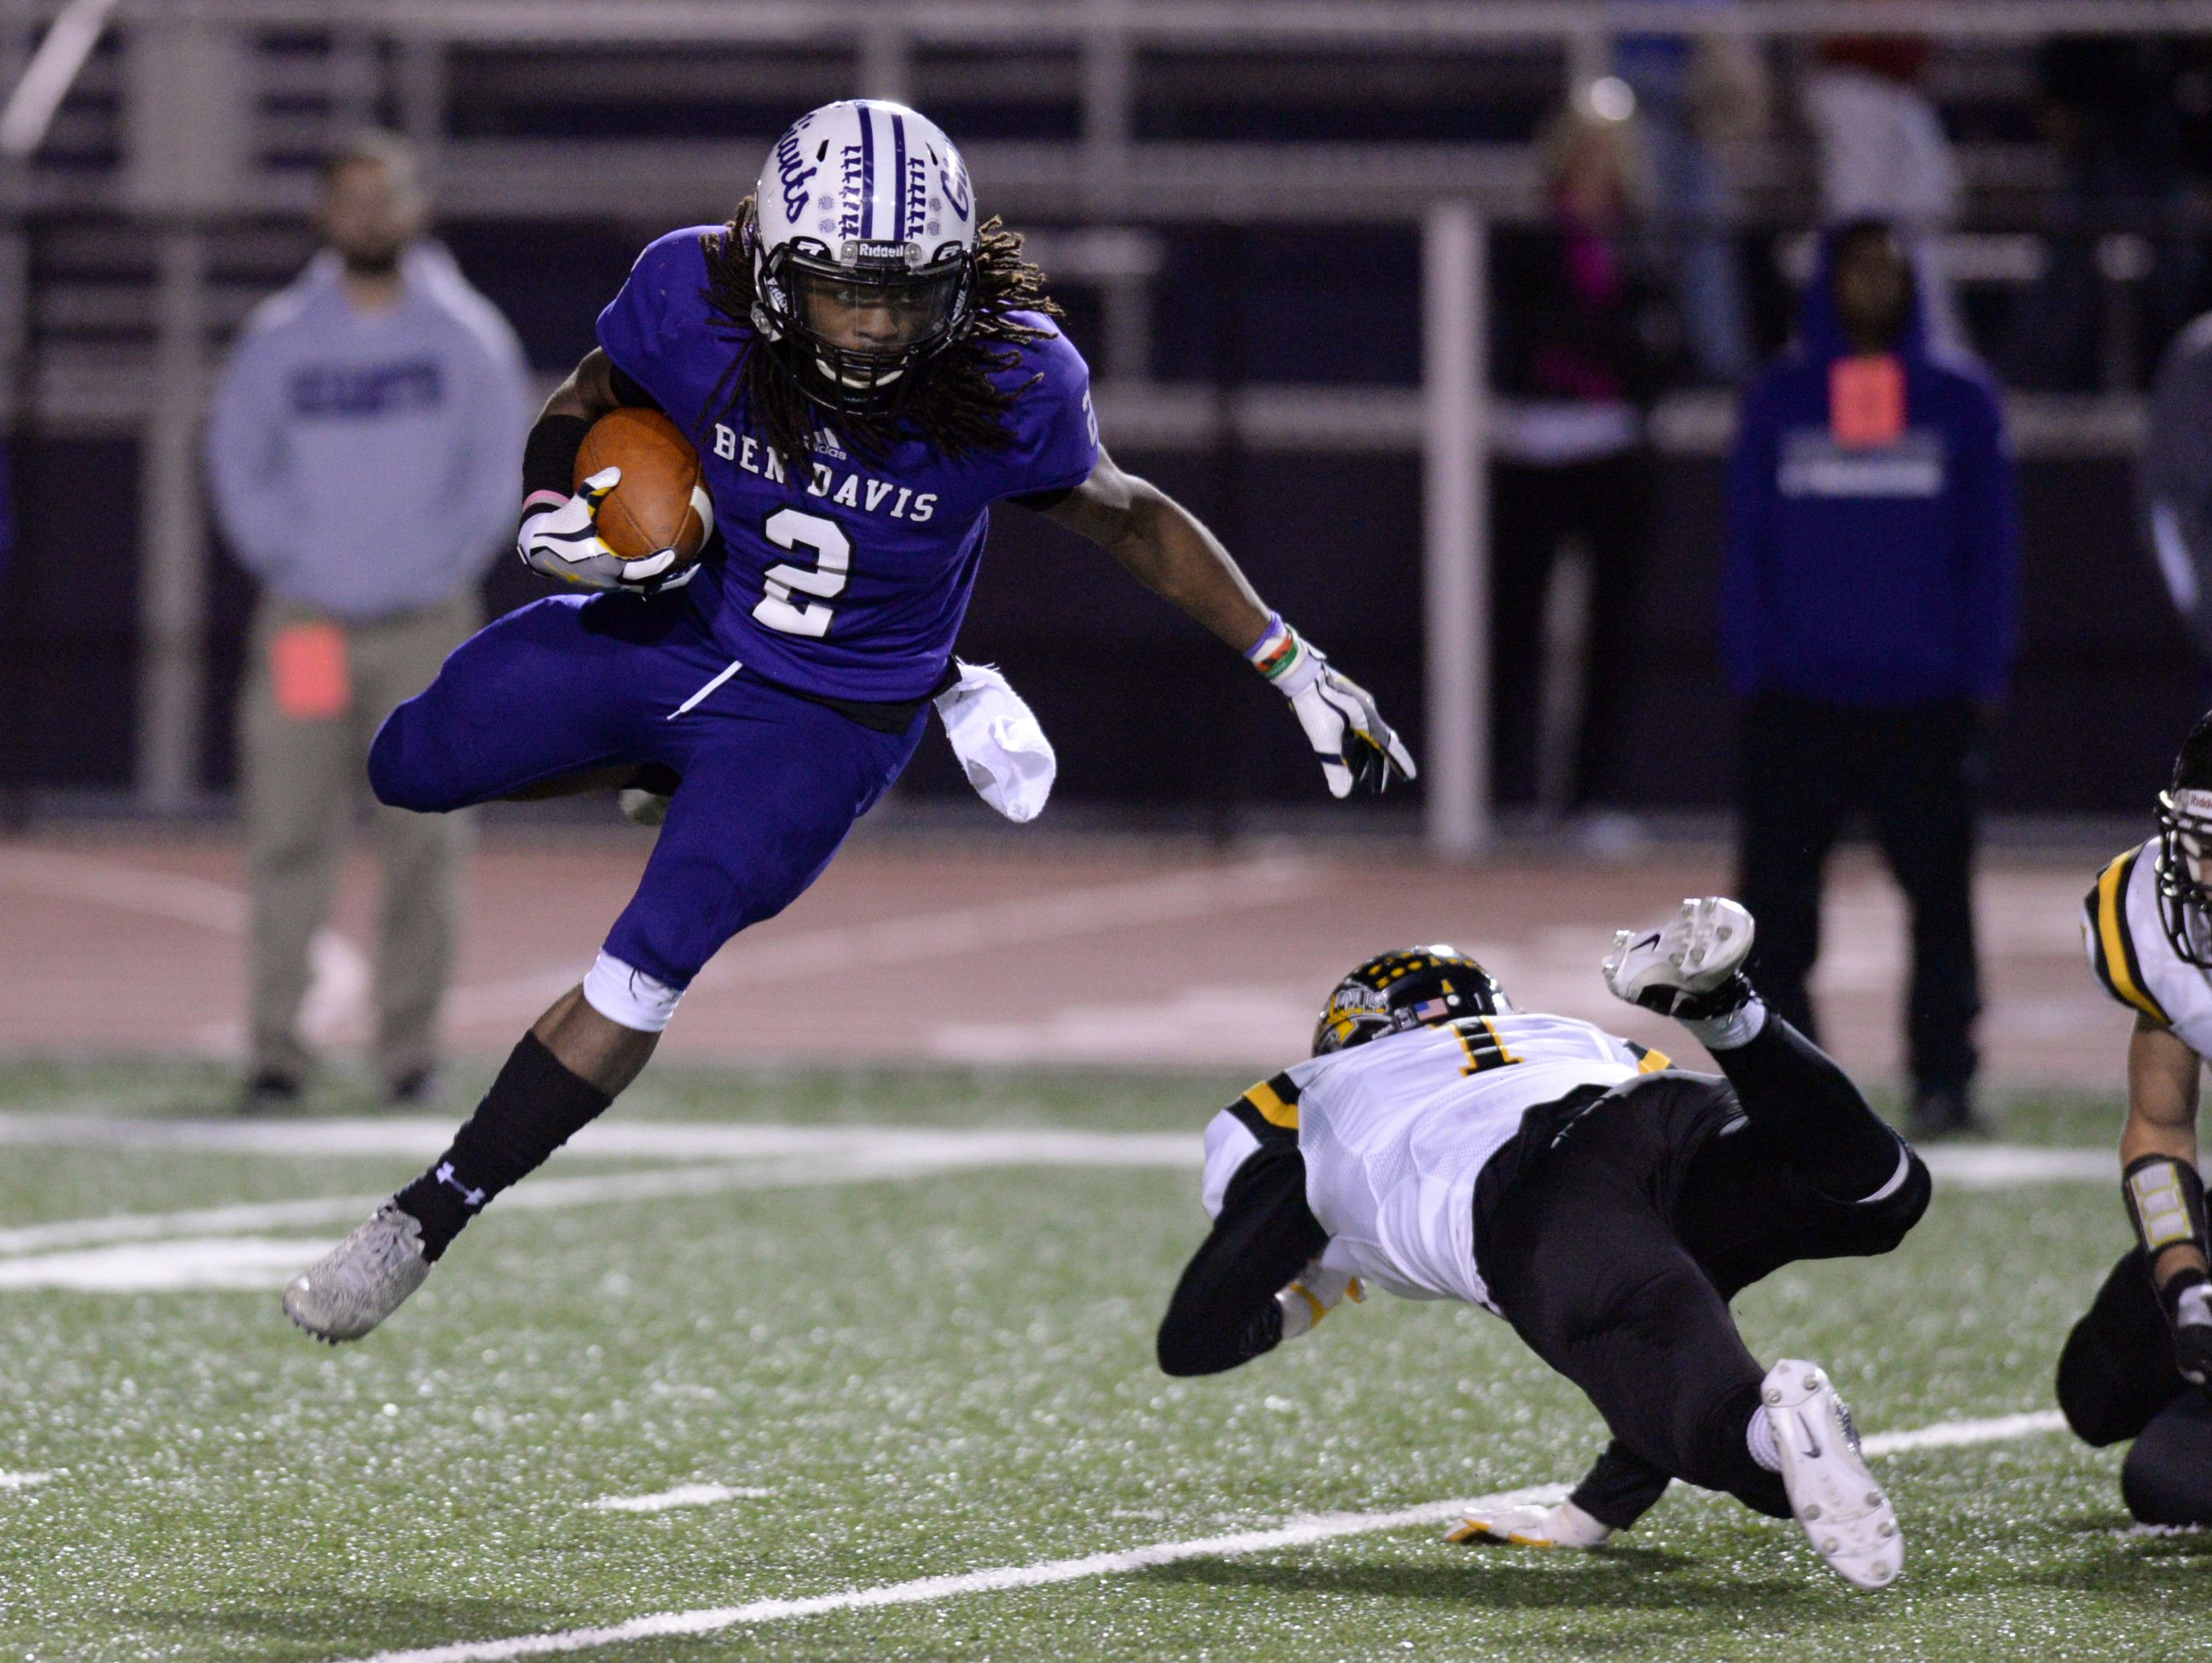 Ben Davis DB Rondell Allen makes a play in the secondary against Avon on Friday night.